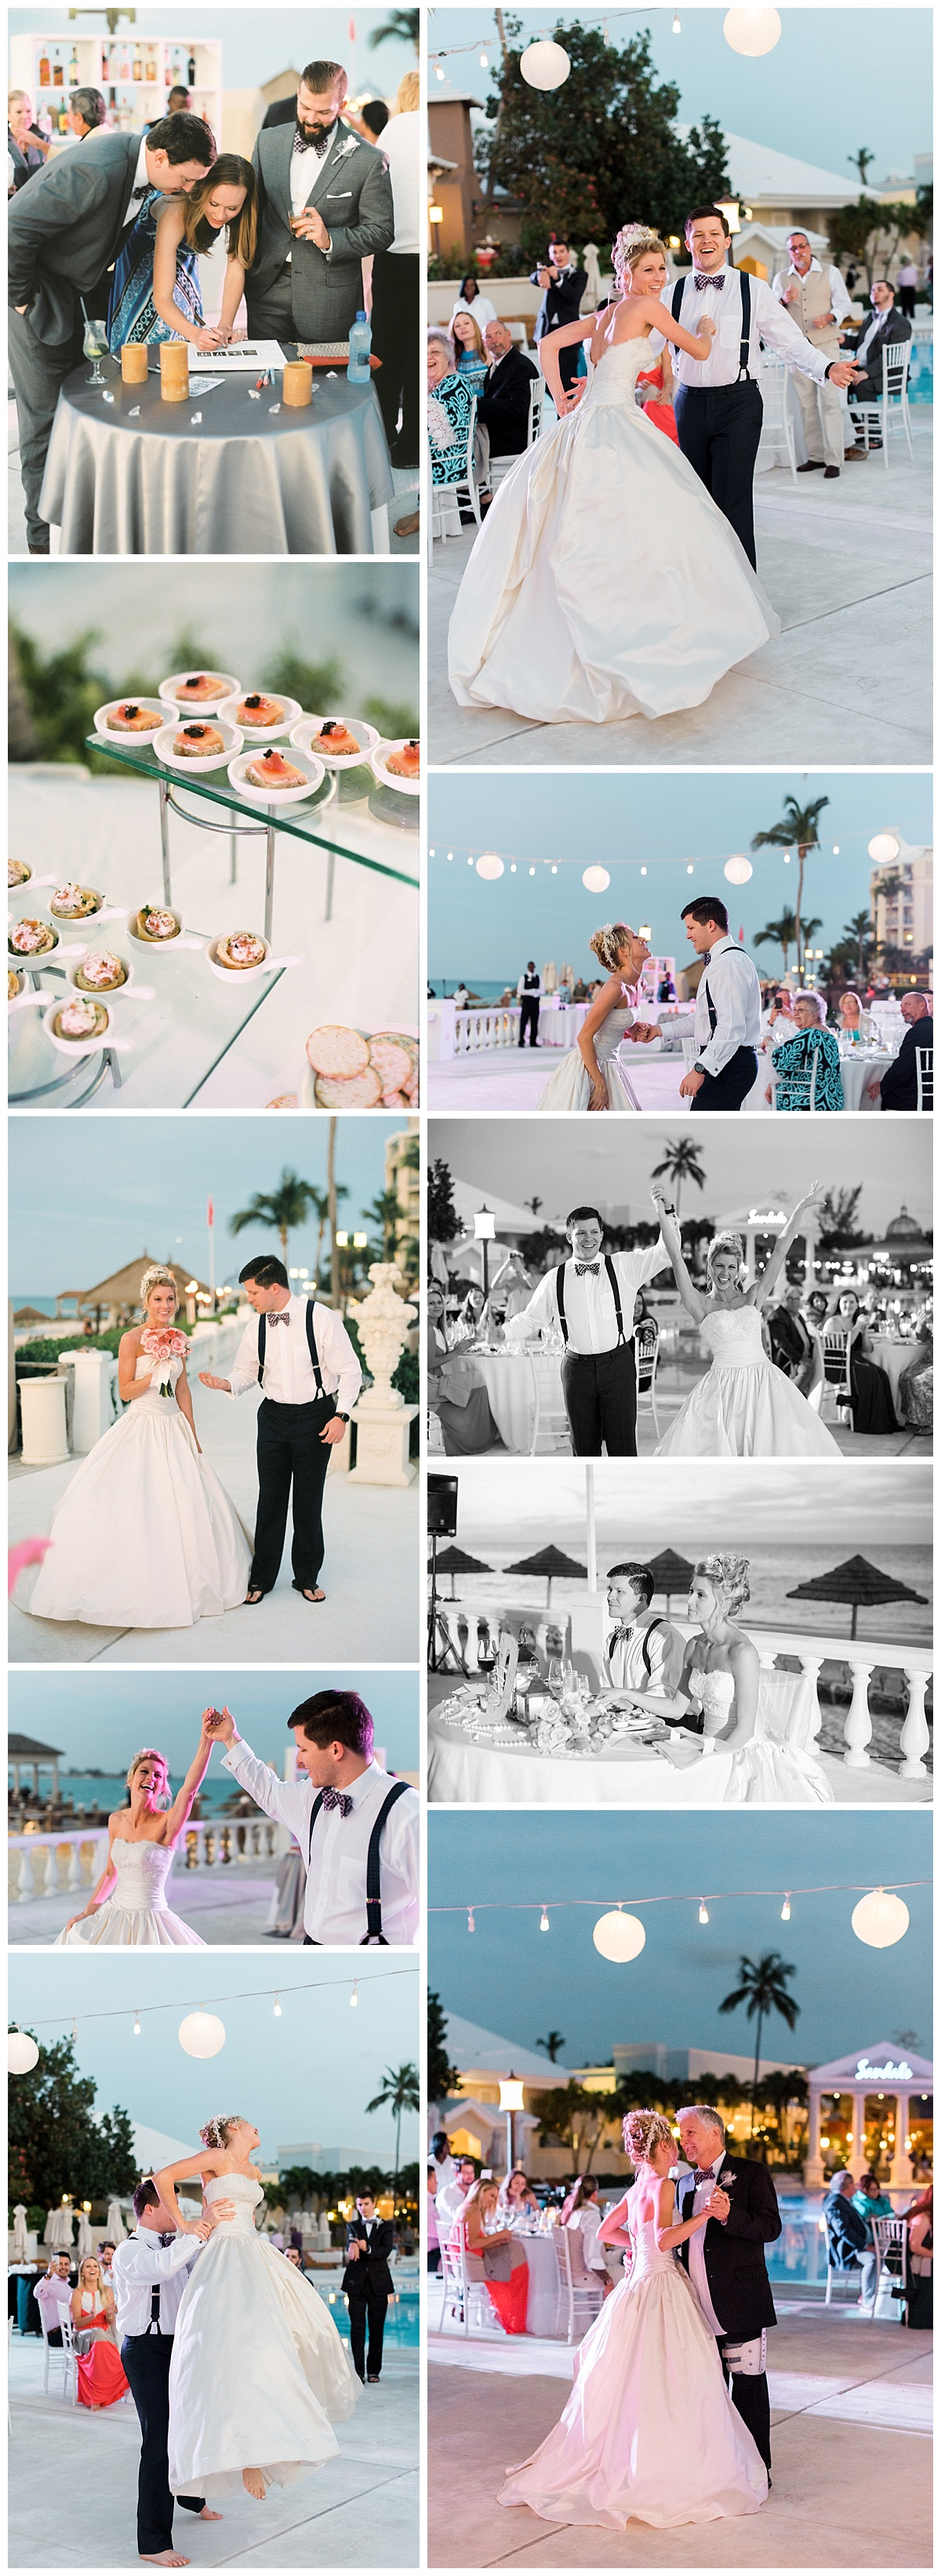 sandals-bahamas-wedding-ar-photography-14.jpg